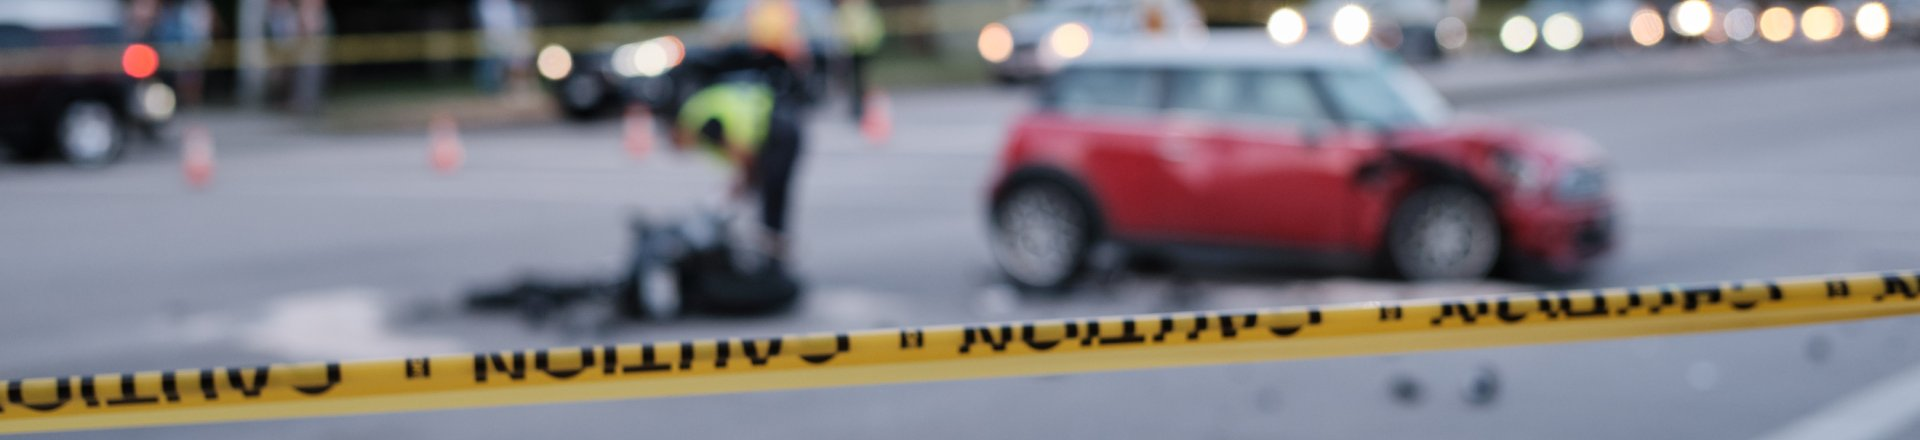 Accident Of Motorcycle And Car At Crossroad, Key West Motorcycle Accident Lawyer